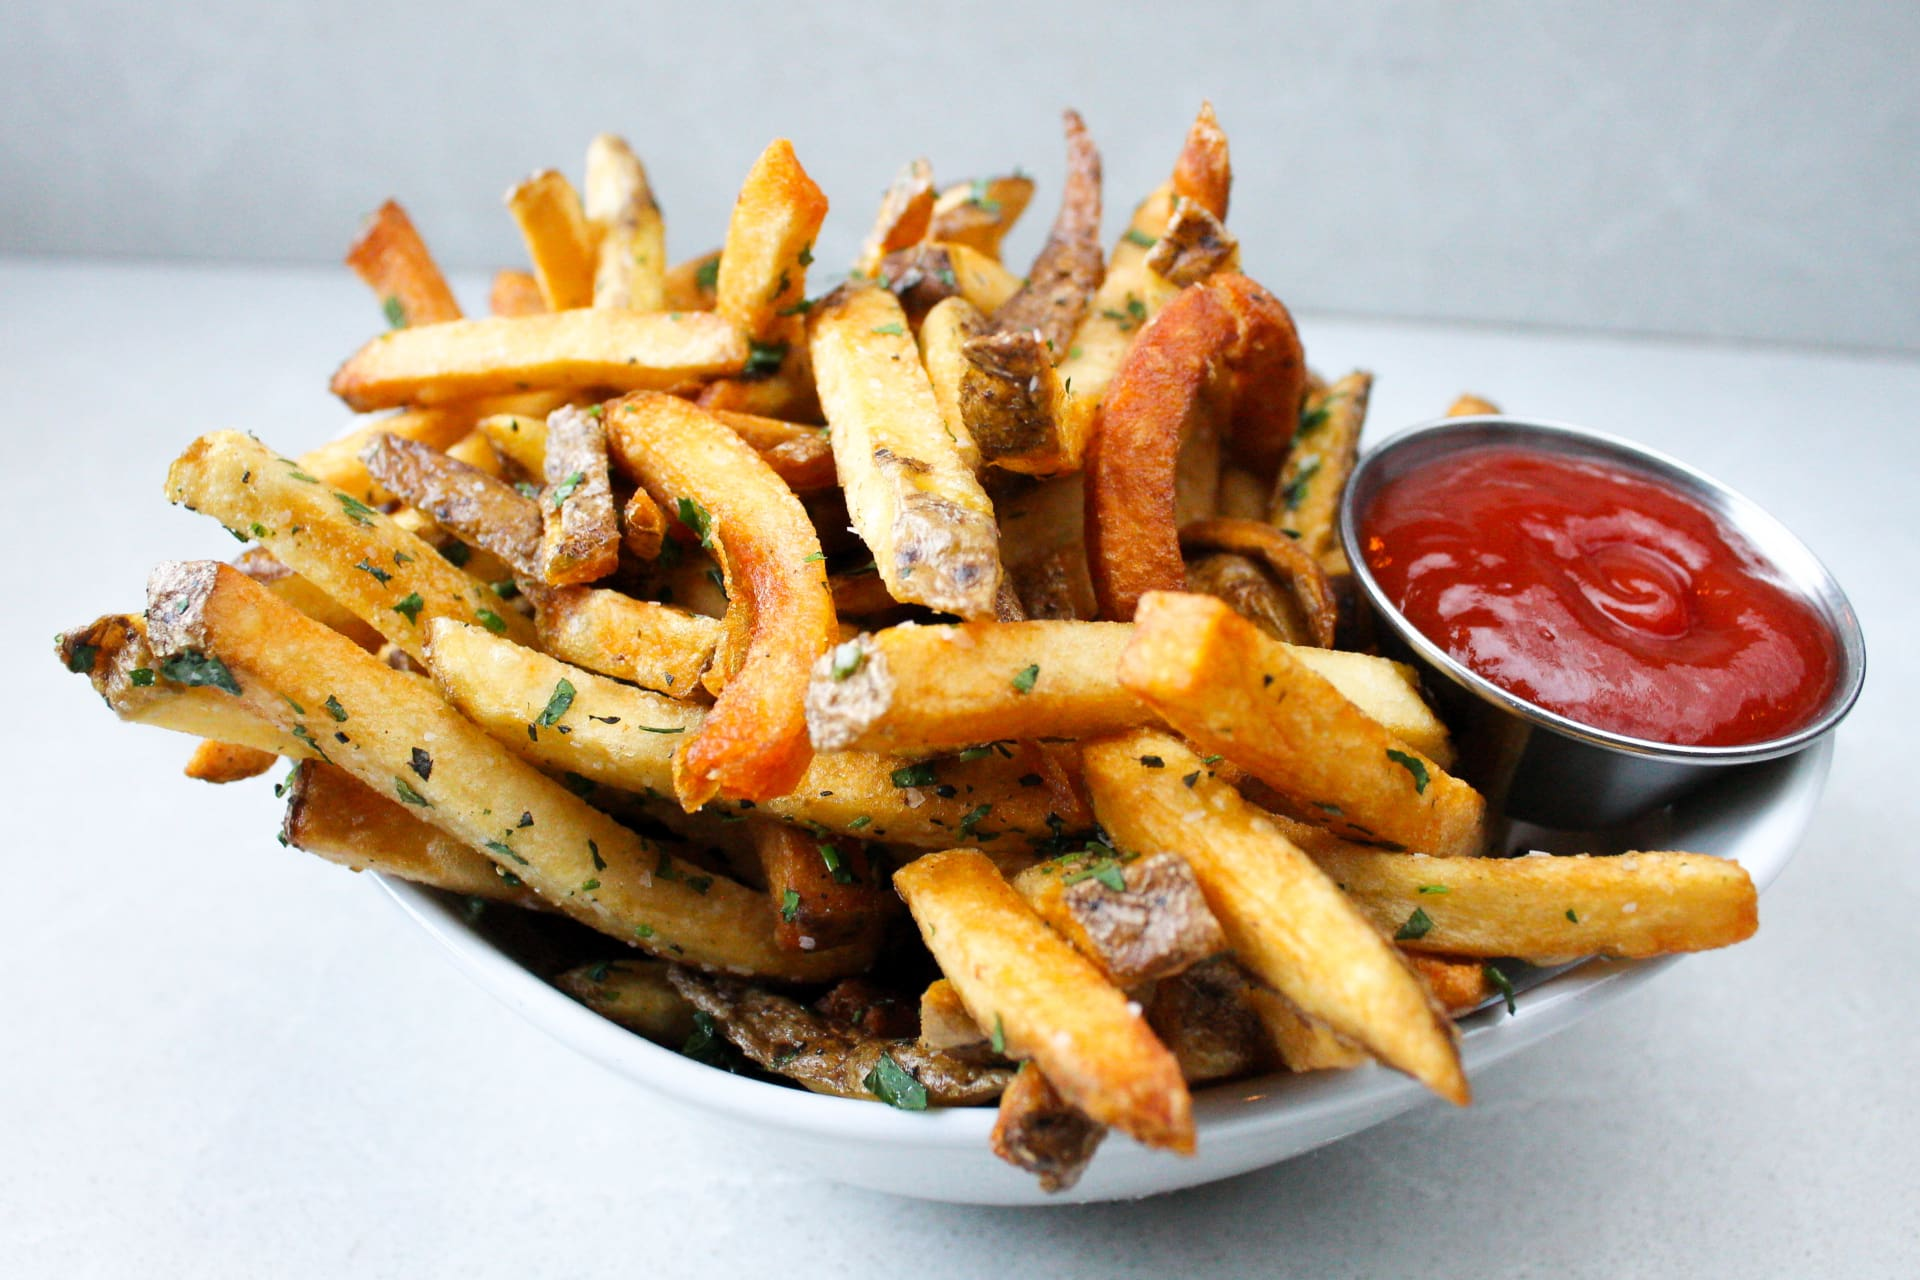 House Cut Herb Fries